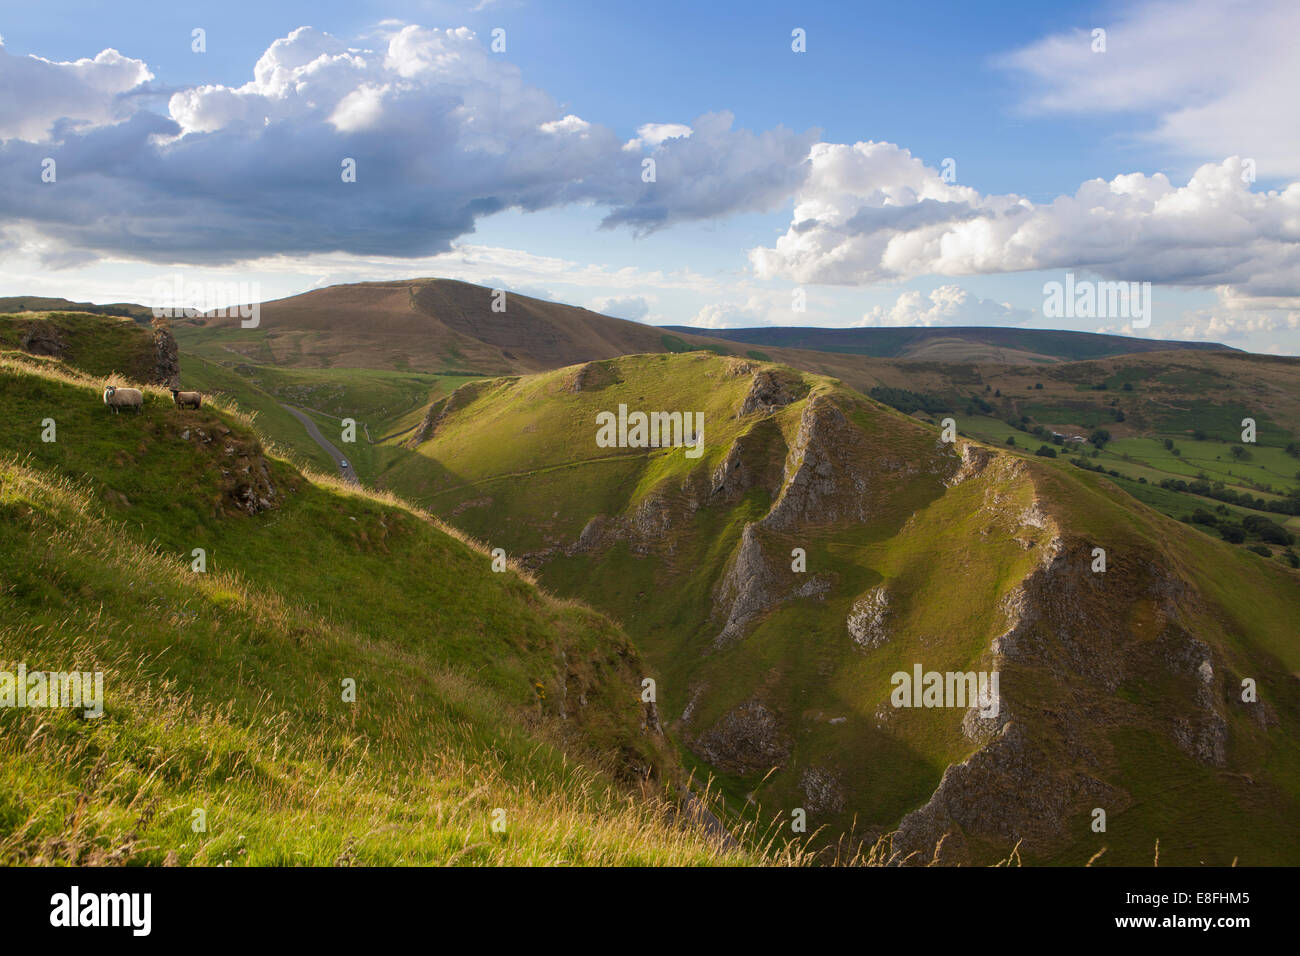 View from above Winatts Pass near Castleton with Mam Tor in the background, High Peak, Derbyshire, England, UK - Stock Image